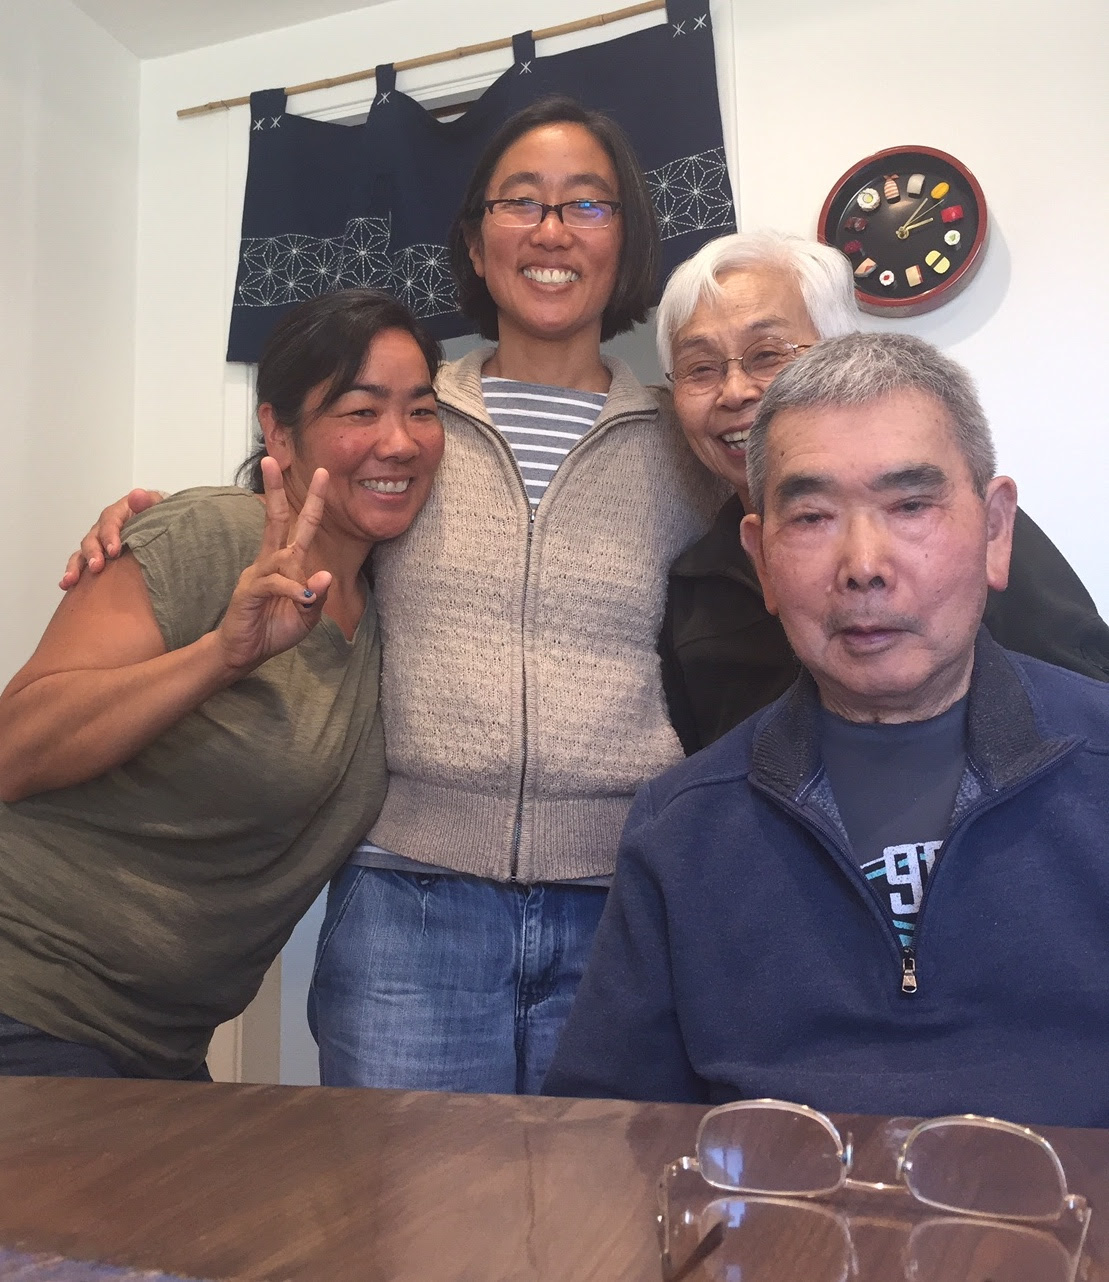 Three women embracing next to and behind an older man who is seated at the table in front of a pair of glasses, all smiling.